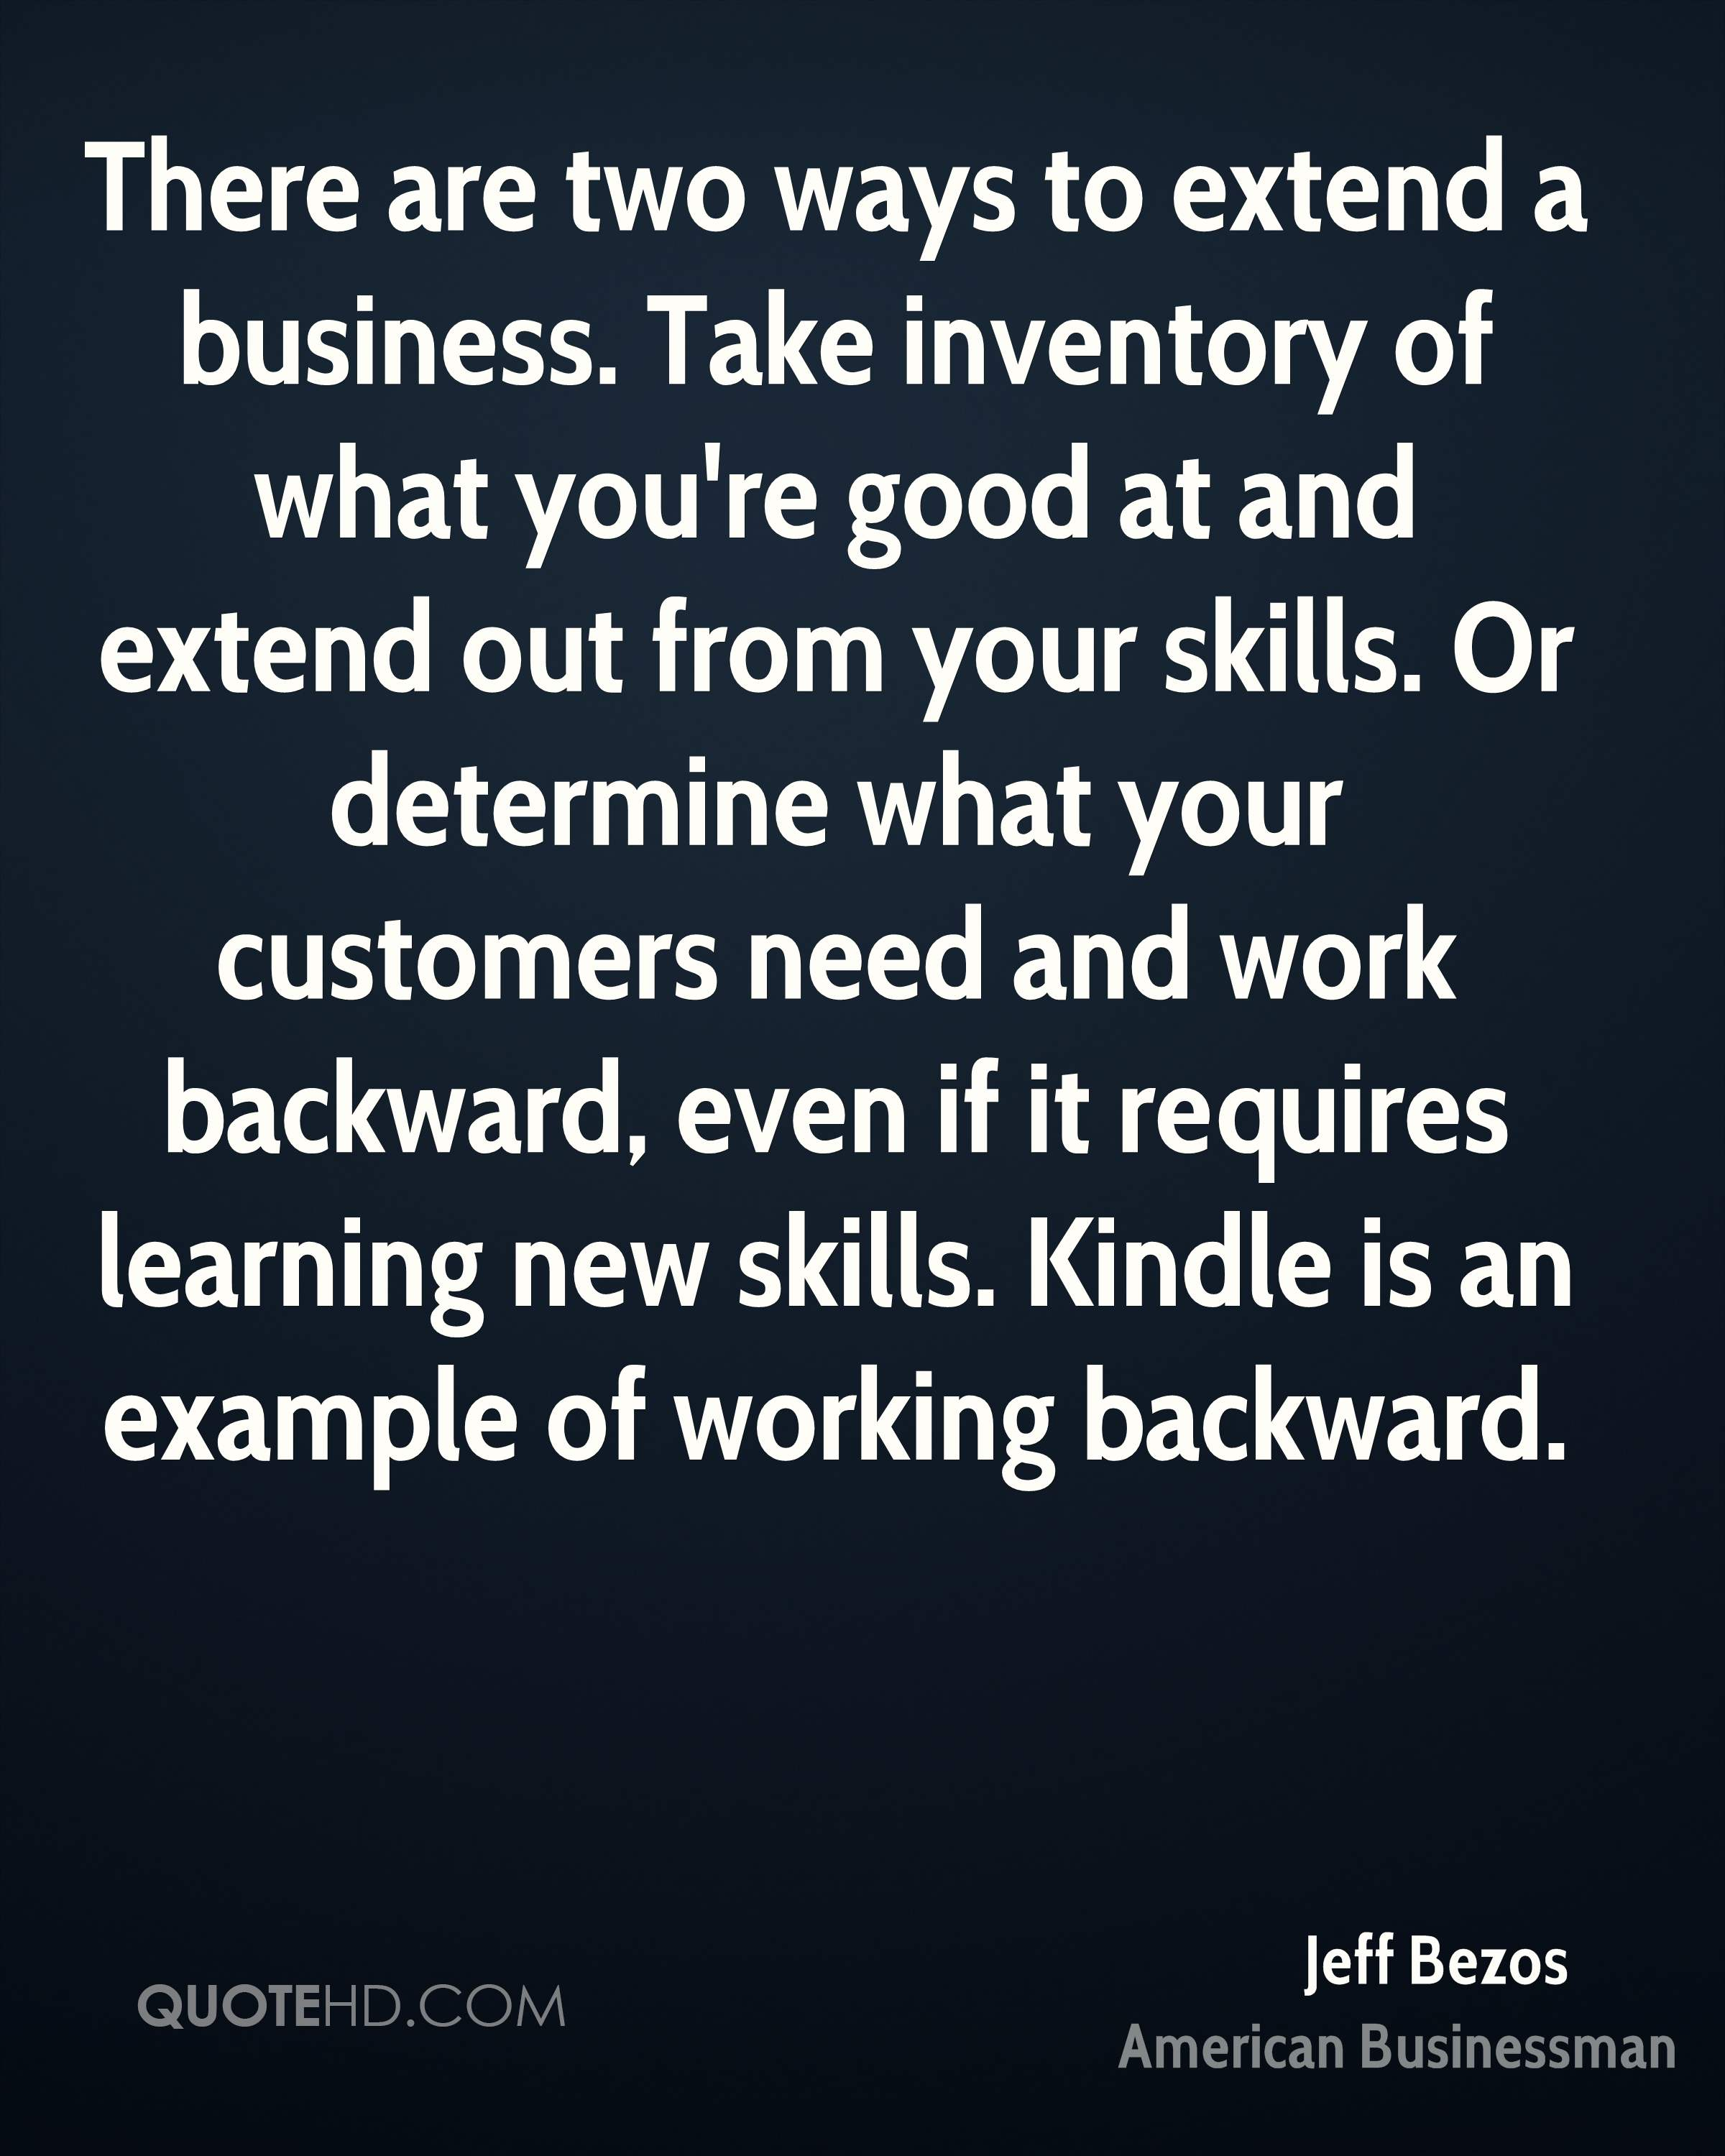 Jeff Bezos Business Quotes Quotehd